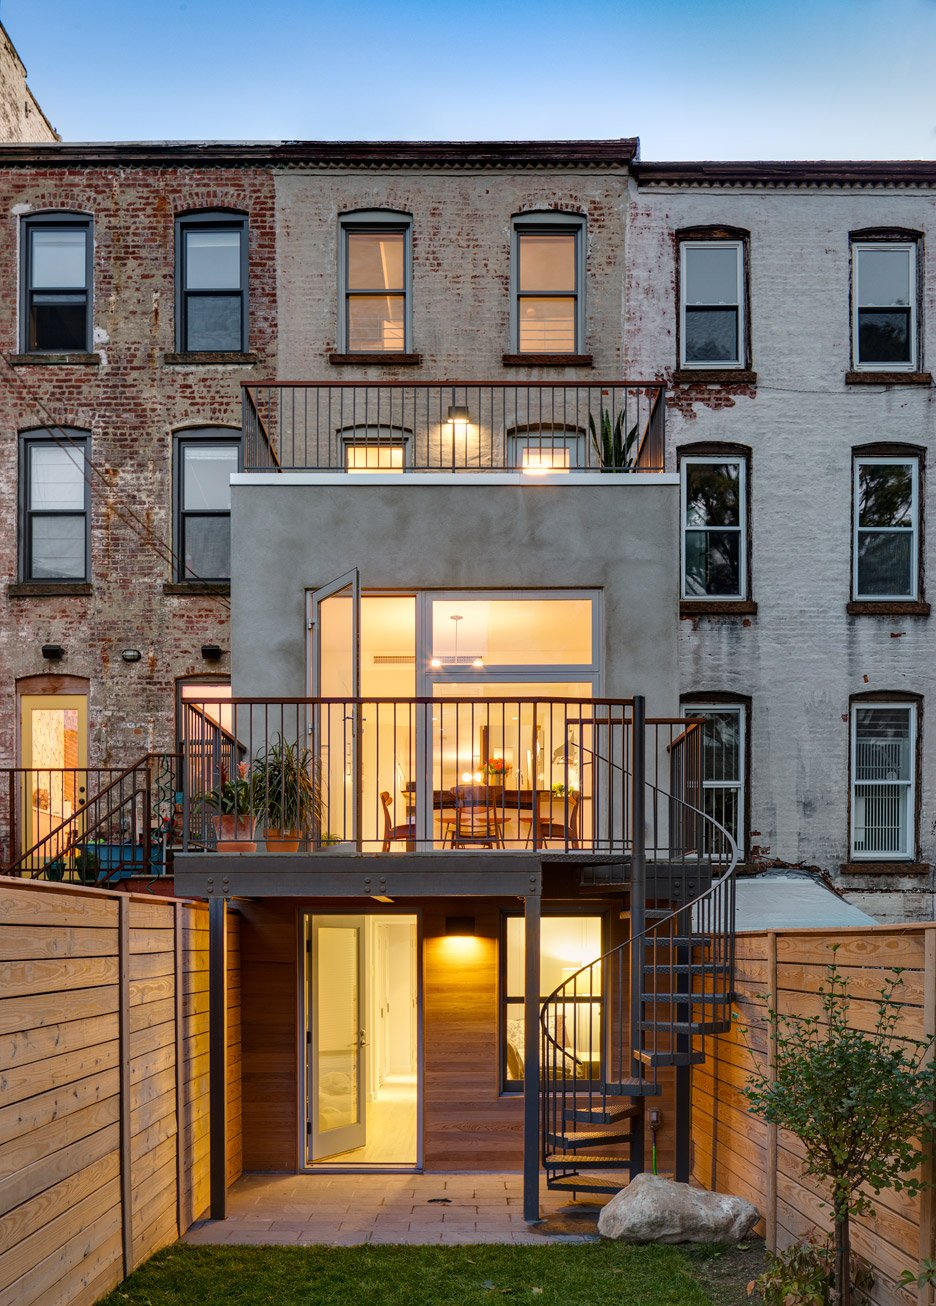 Barker freeman overhuals narrow brooklyn row house for a for Modern house new york